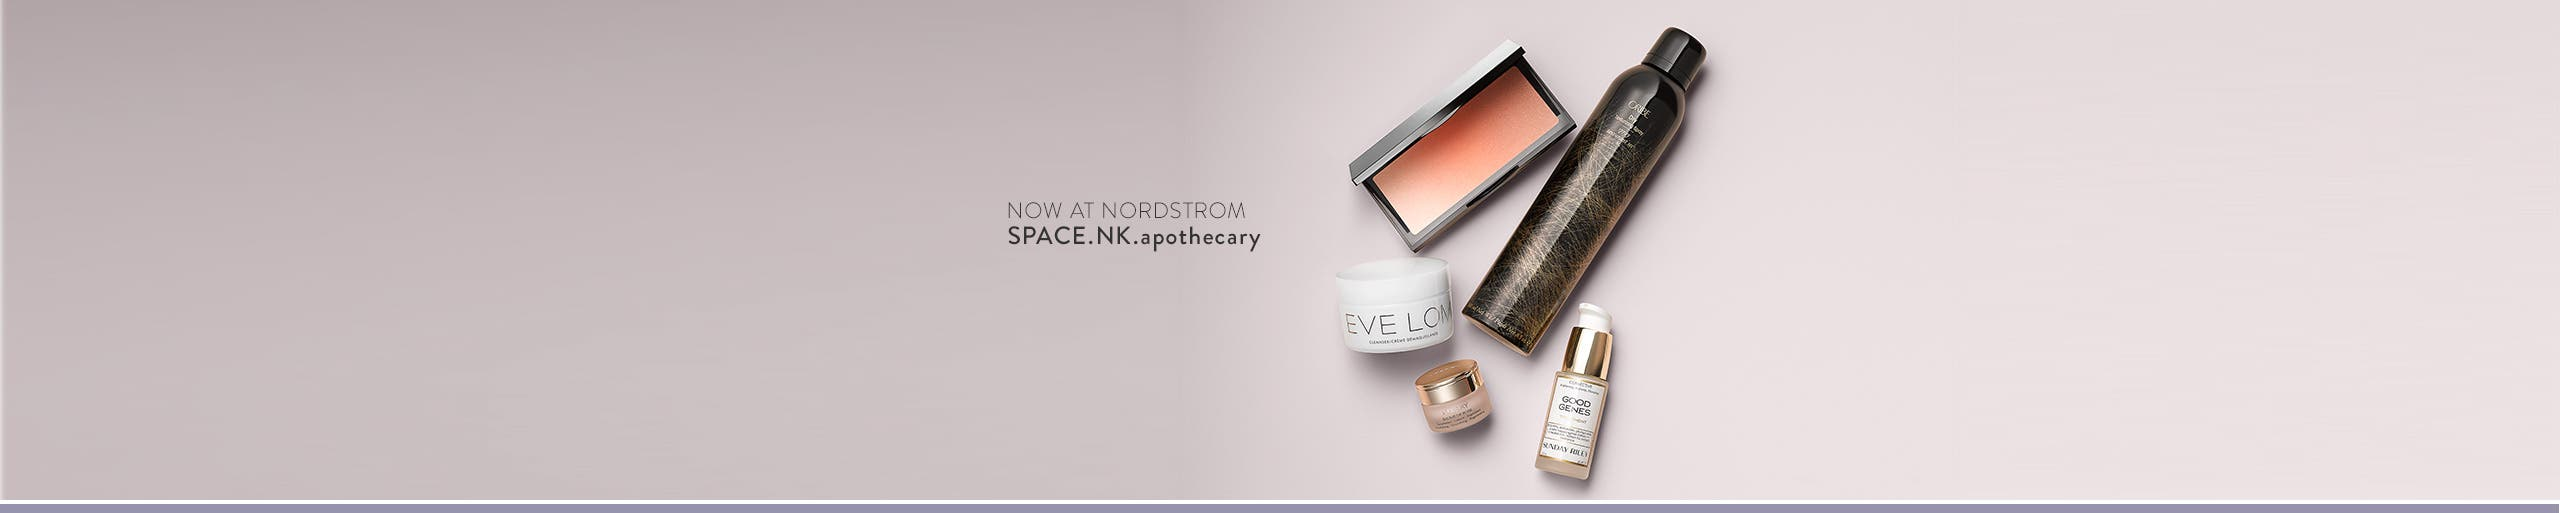 Now at Nordstrom: Space.NK.apothecary.